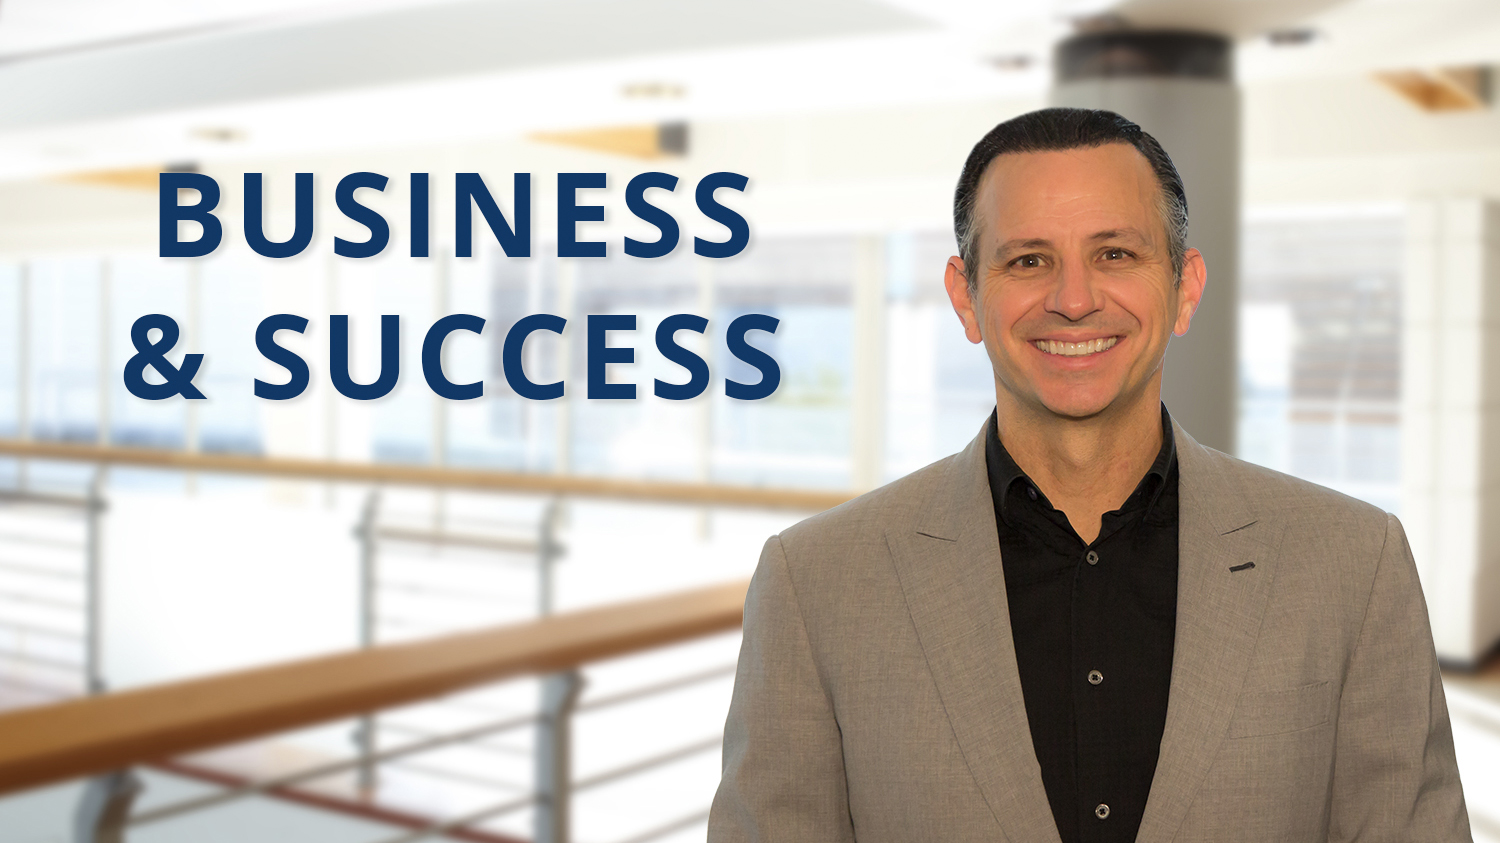 Travis Fox - Architect of Being - Business Success